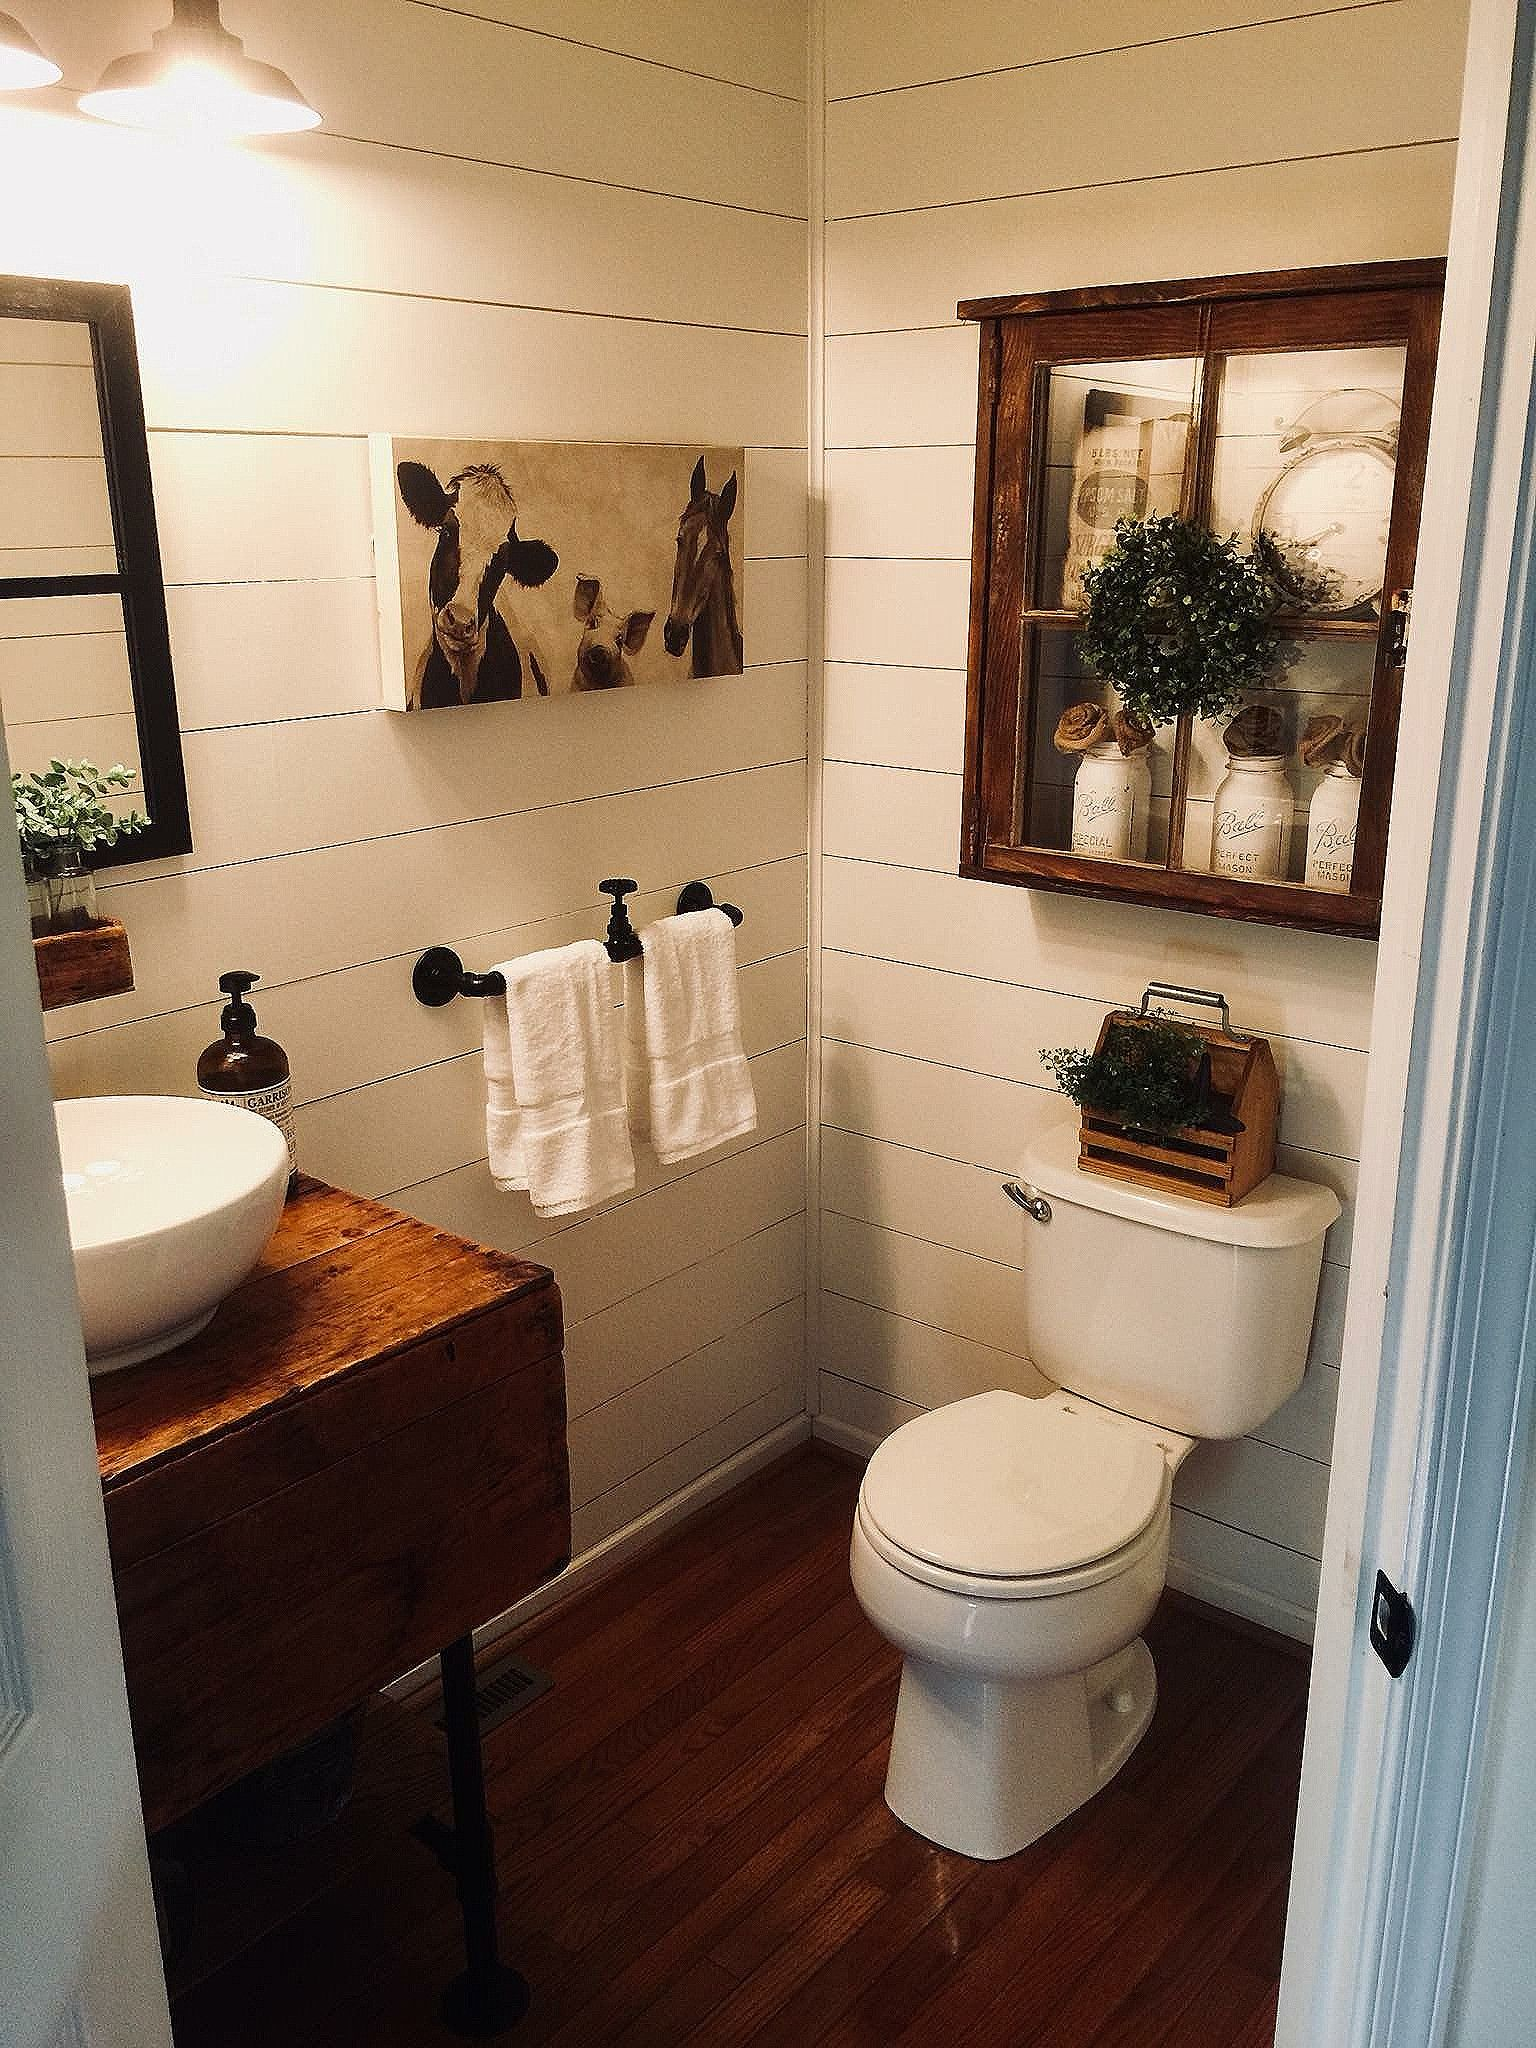 Awesome Bathroom Designs Pinterest Small Rustic Bathrooms Bathroom Remodel Designs Rustic Bathrooms